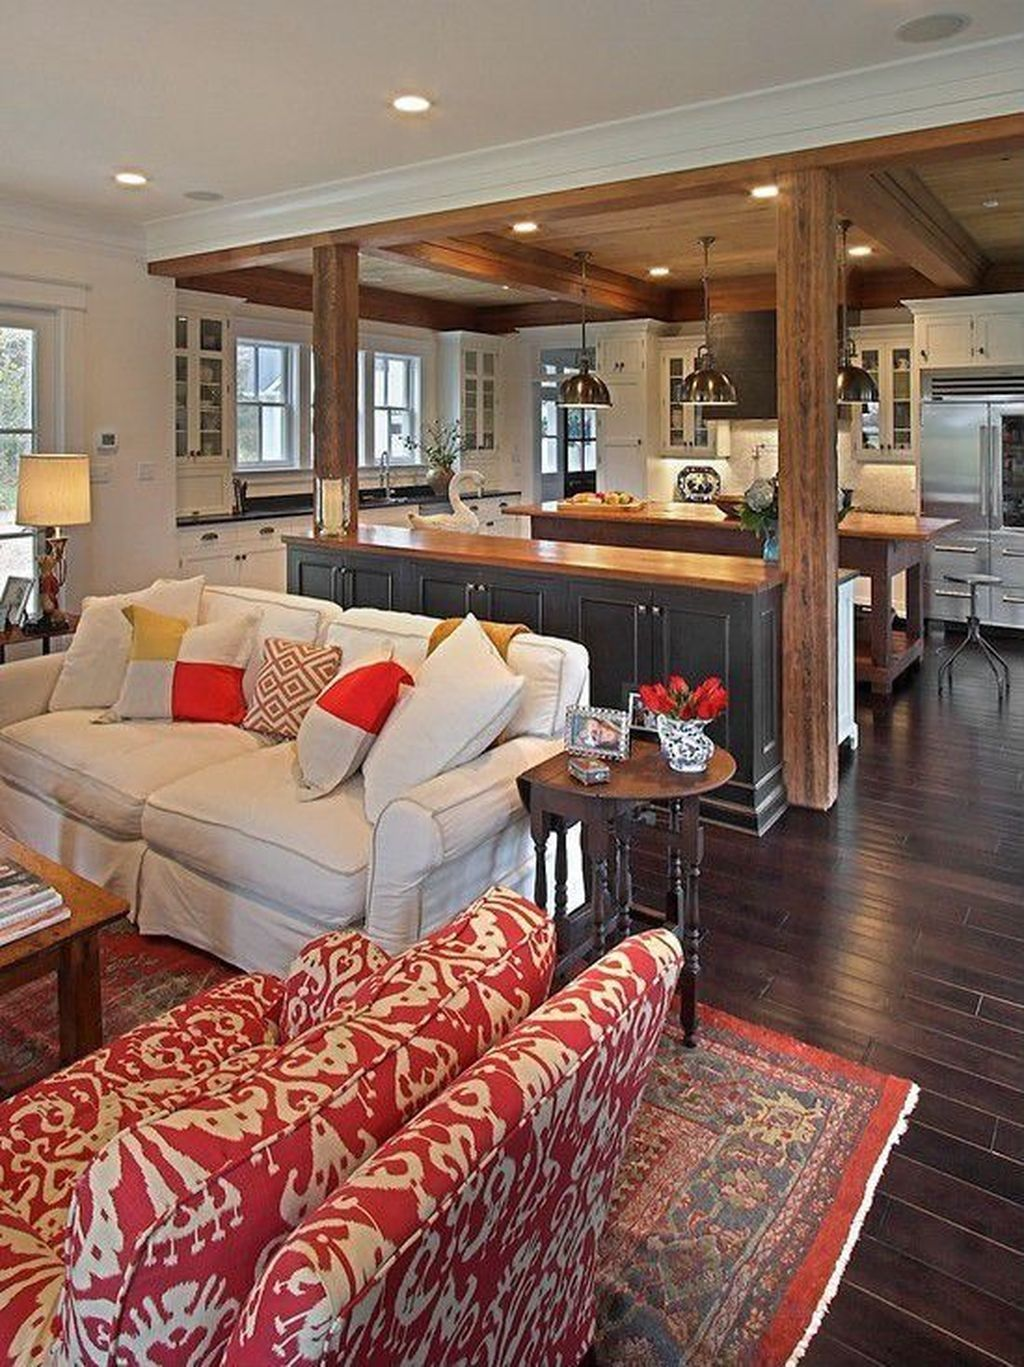 30+ Stunning Living Room Design With Farmhouse Style is part of Stunning Living Room Design With Farmhouse Style - An open household room and kitchen the place the household eats is designed in charming farmhouse type which makes it a heat and welcoming coronary heart for the house  The focus within the kitchen is the ivory wall with a… Continue Reading →